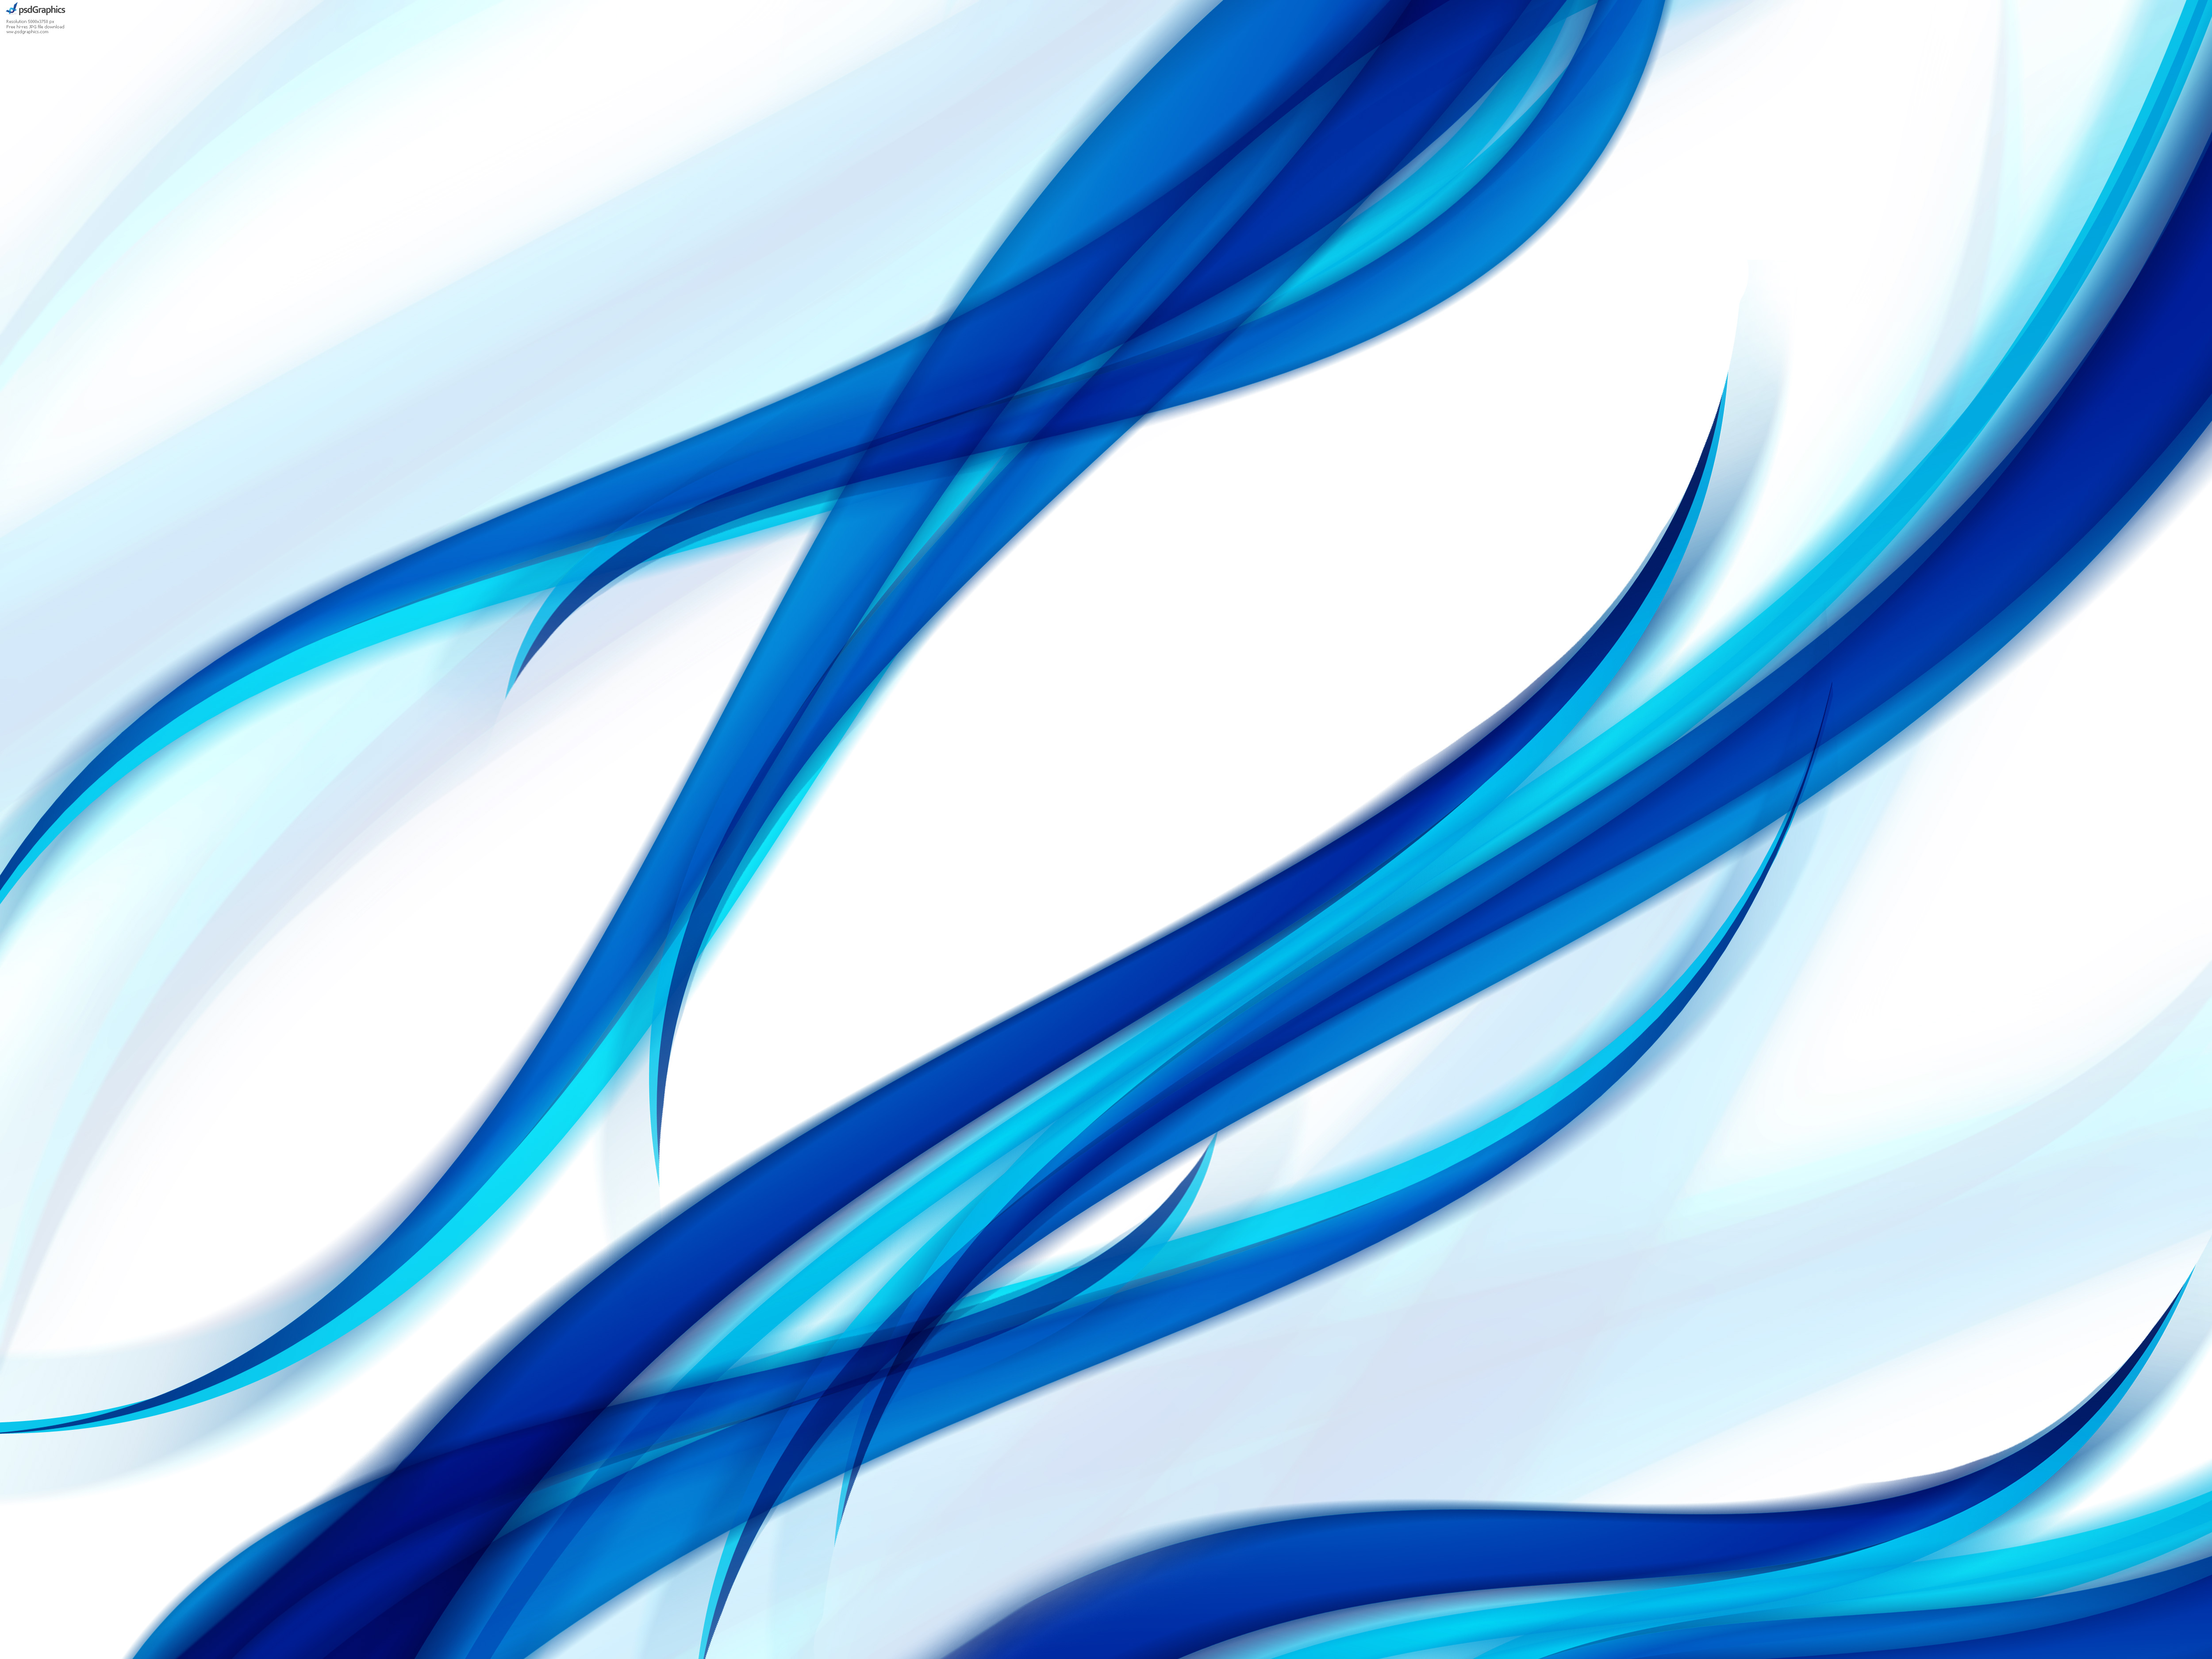 Free Download Light Blue Abstract Design Full Hd Wallpaper